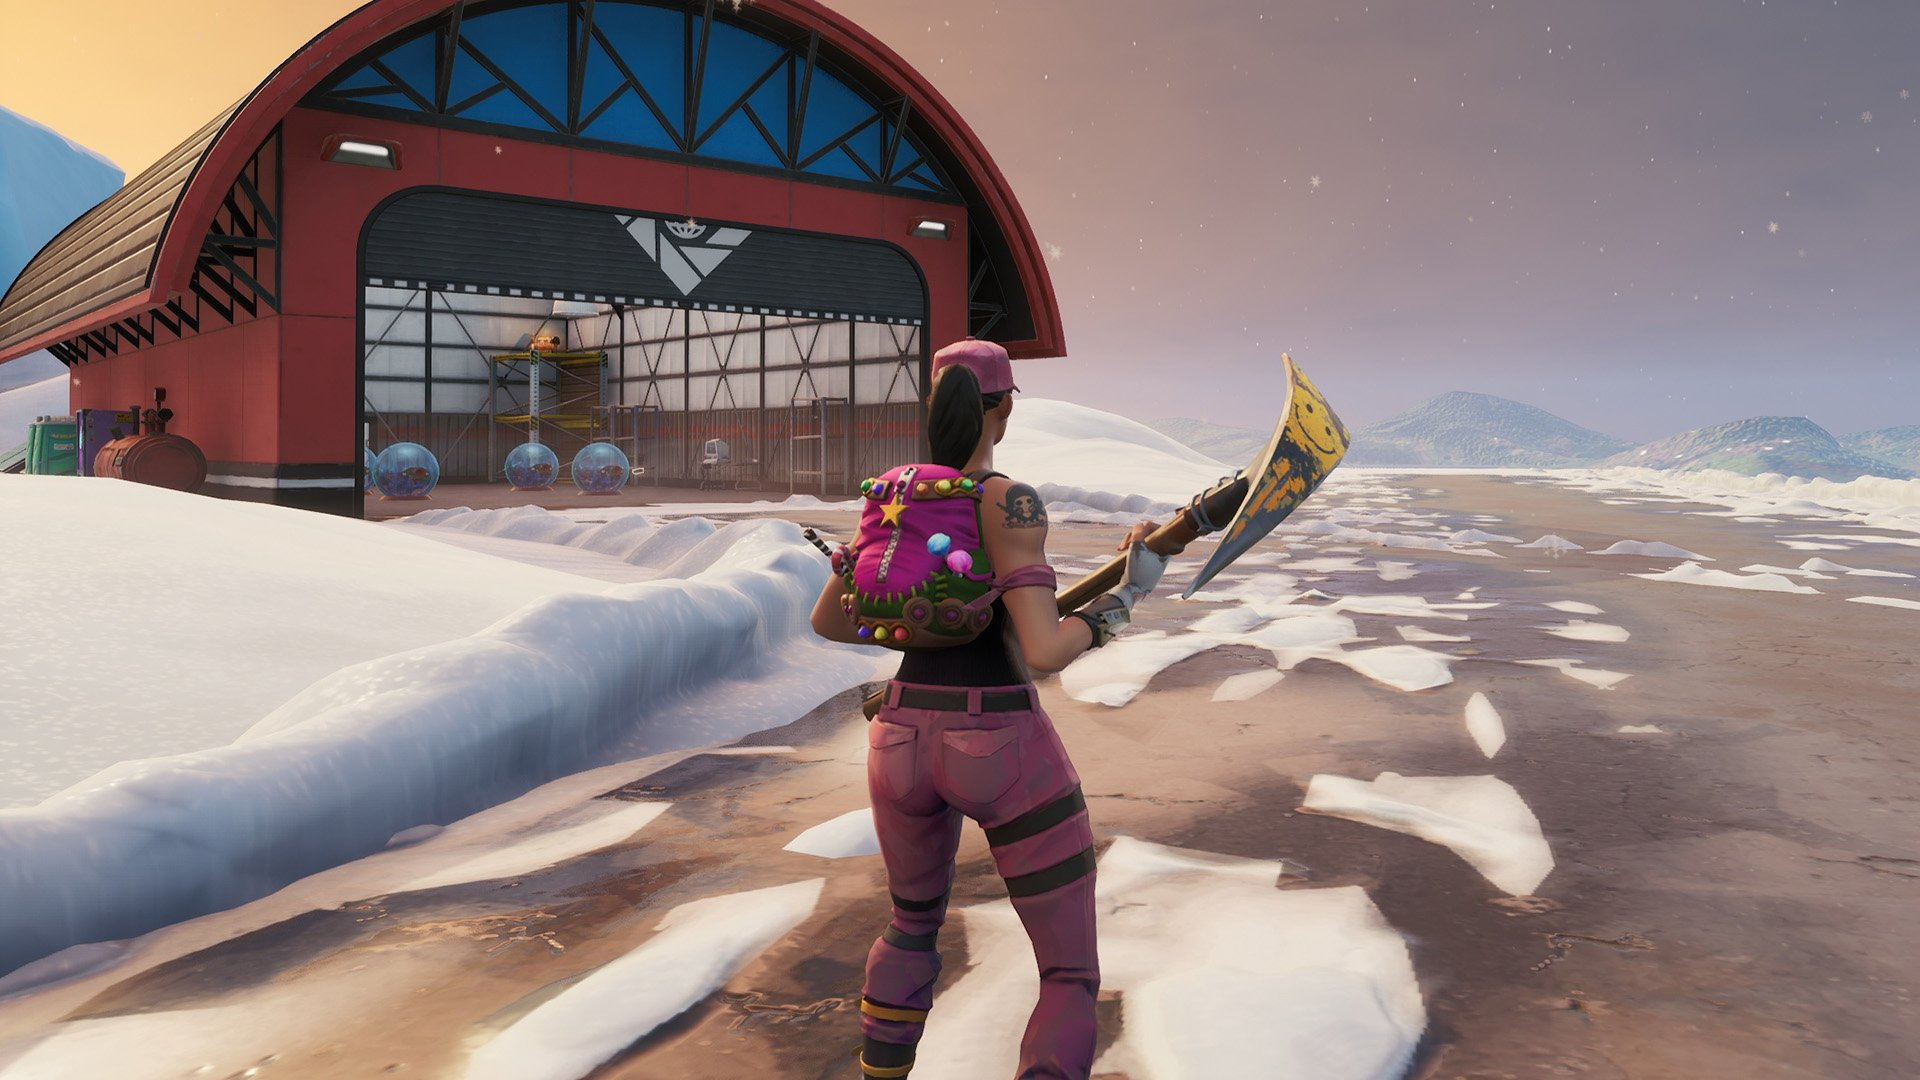 where is the treasure map signpost in paradise palms